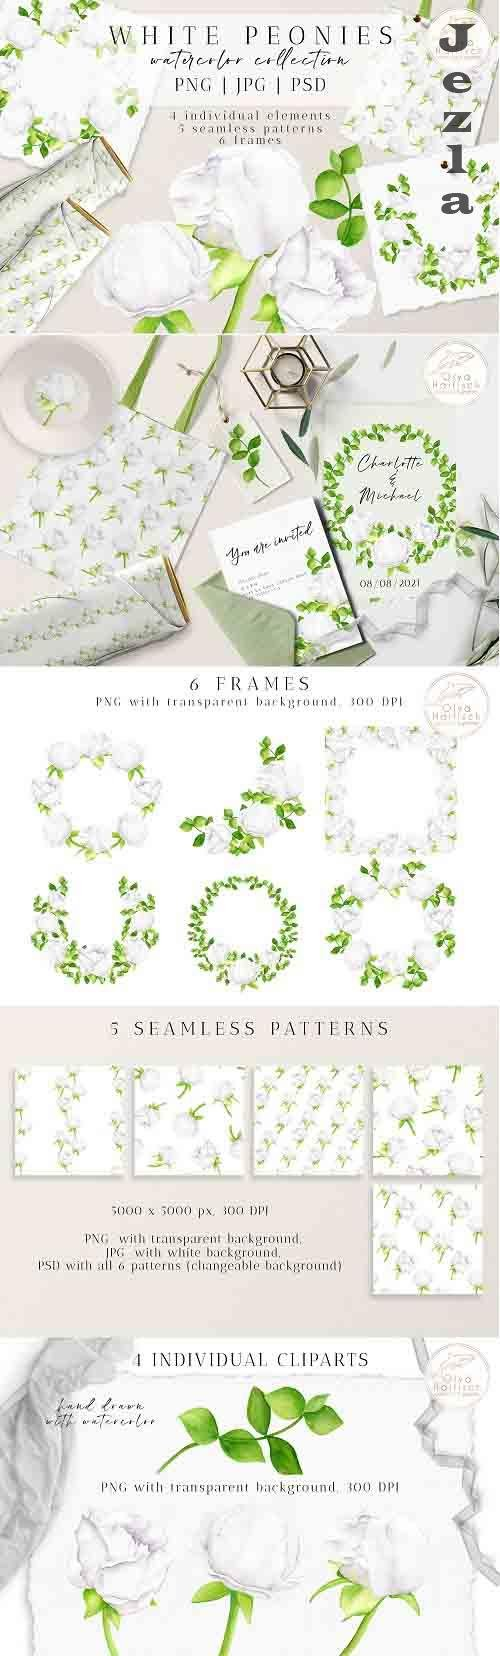 Watercolor Peony Flowers Clipart Collection. Floral Wreaths - 1336487